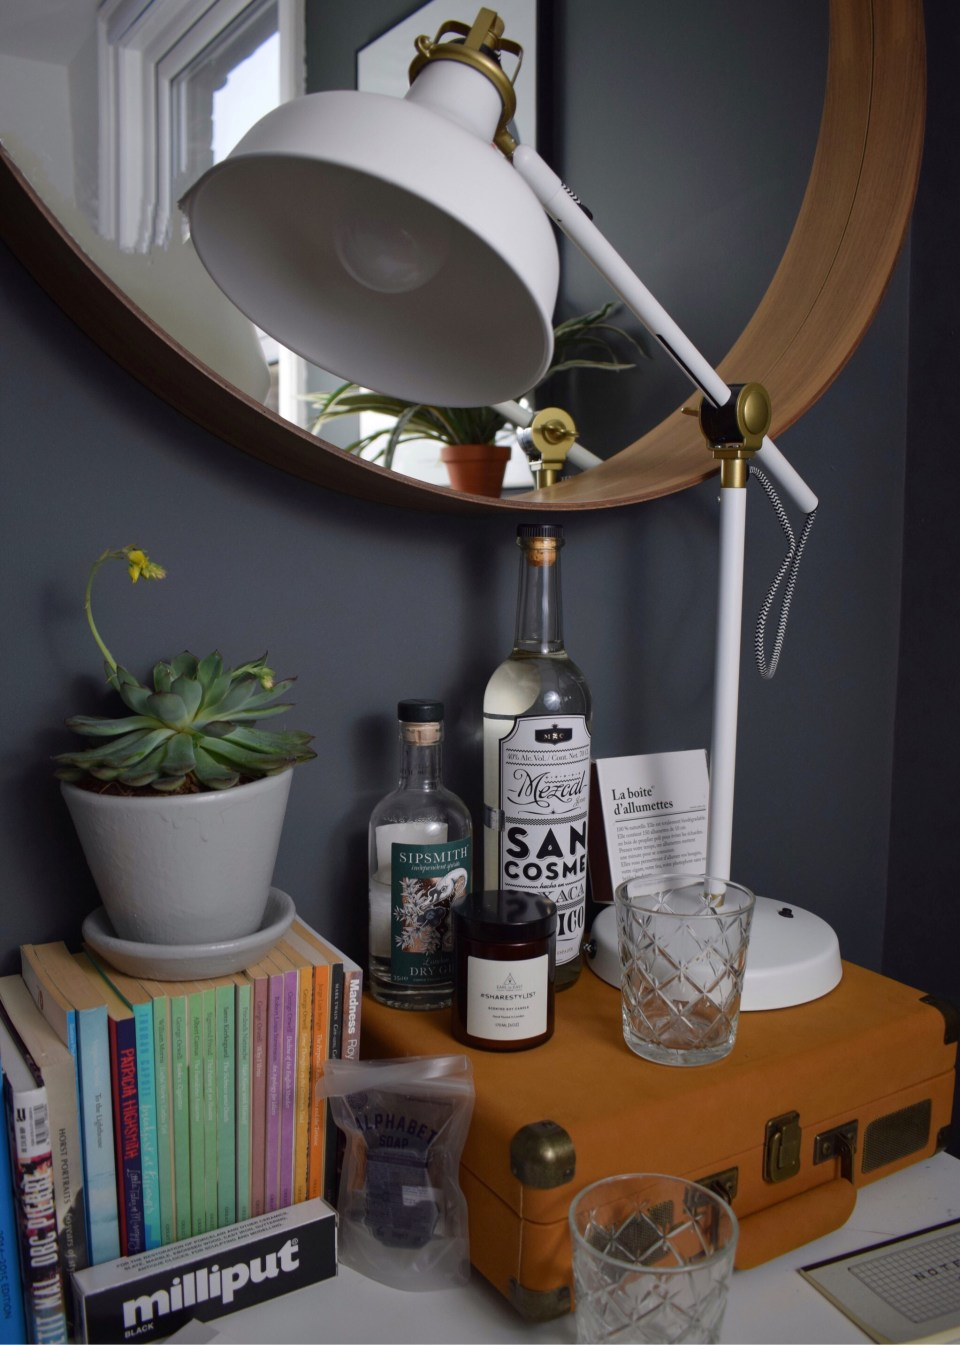 bohemian modern mid century vintage farrow downpipe modernist study home office styling ideas and inspiration, vintage stationary, crossley record player, drinks trolley record storage ranarp lamp